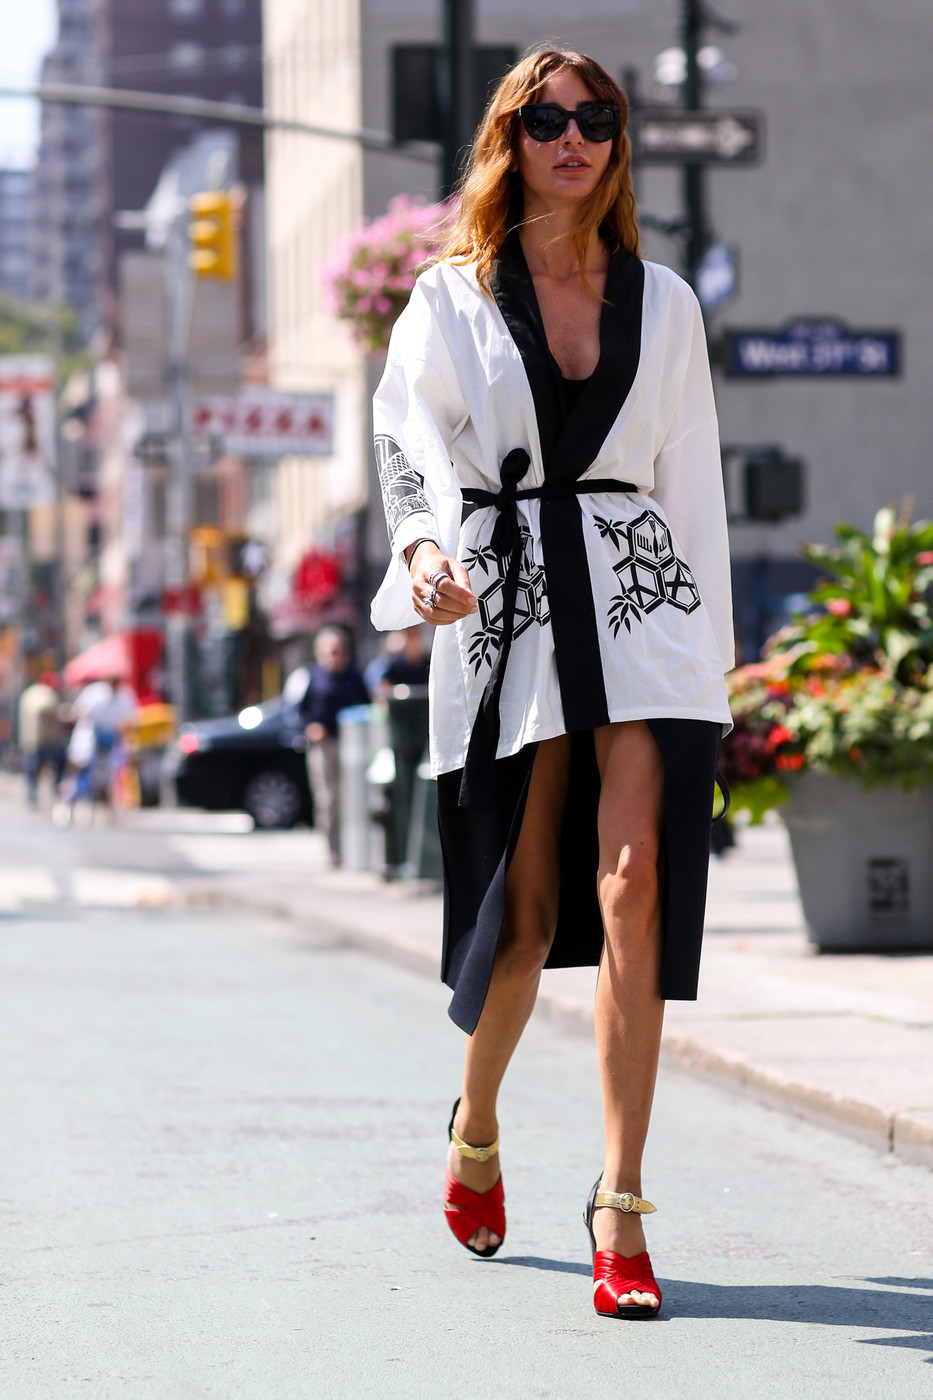 Kimono Cool Best Street Style From New York Fashion Week Spring 2015 Livingly